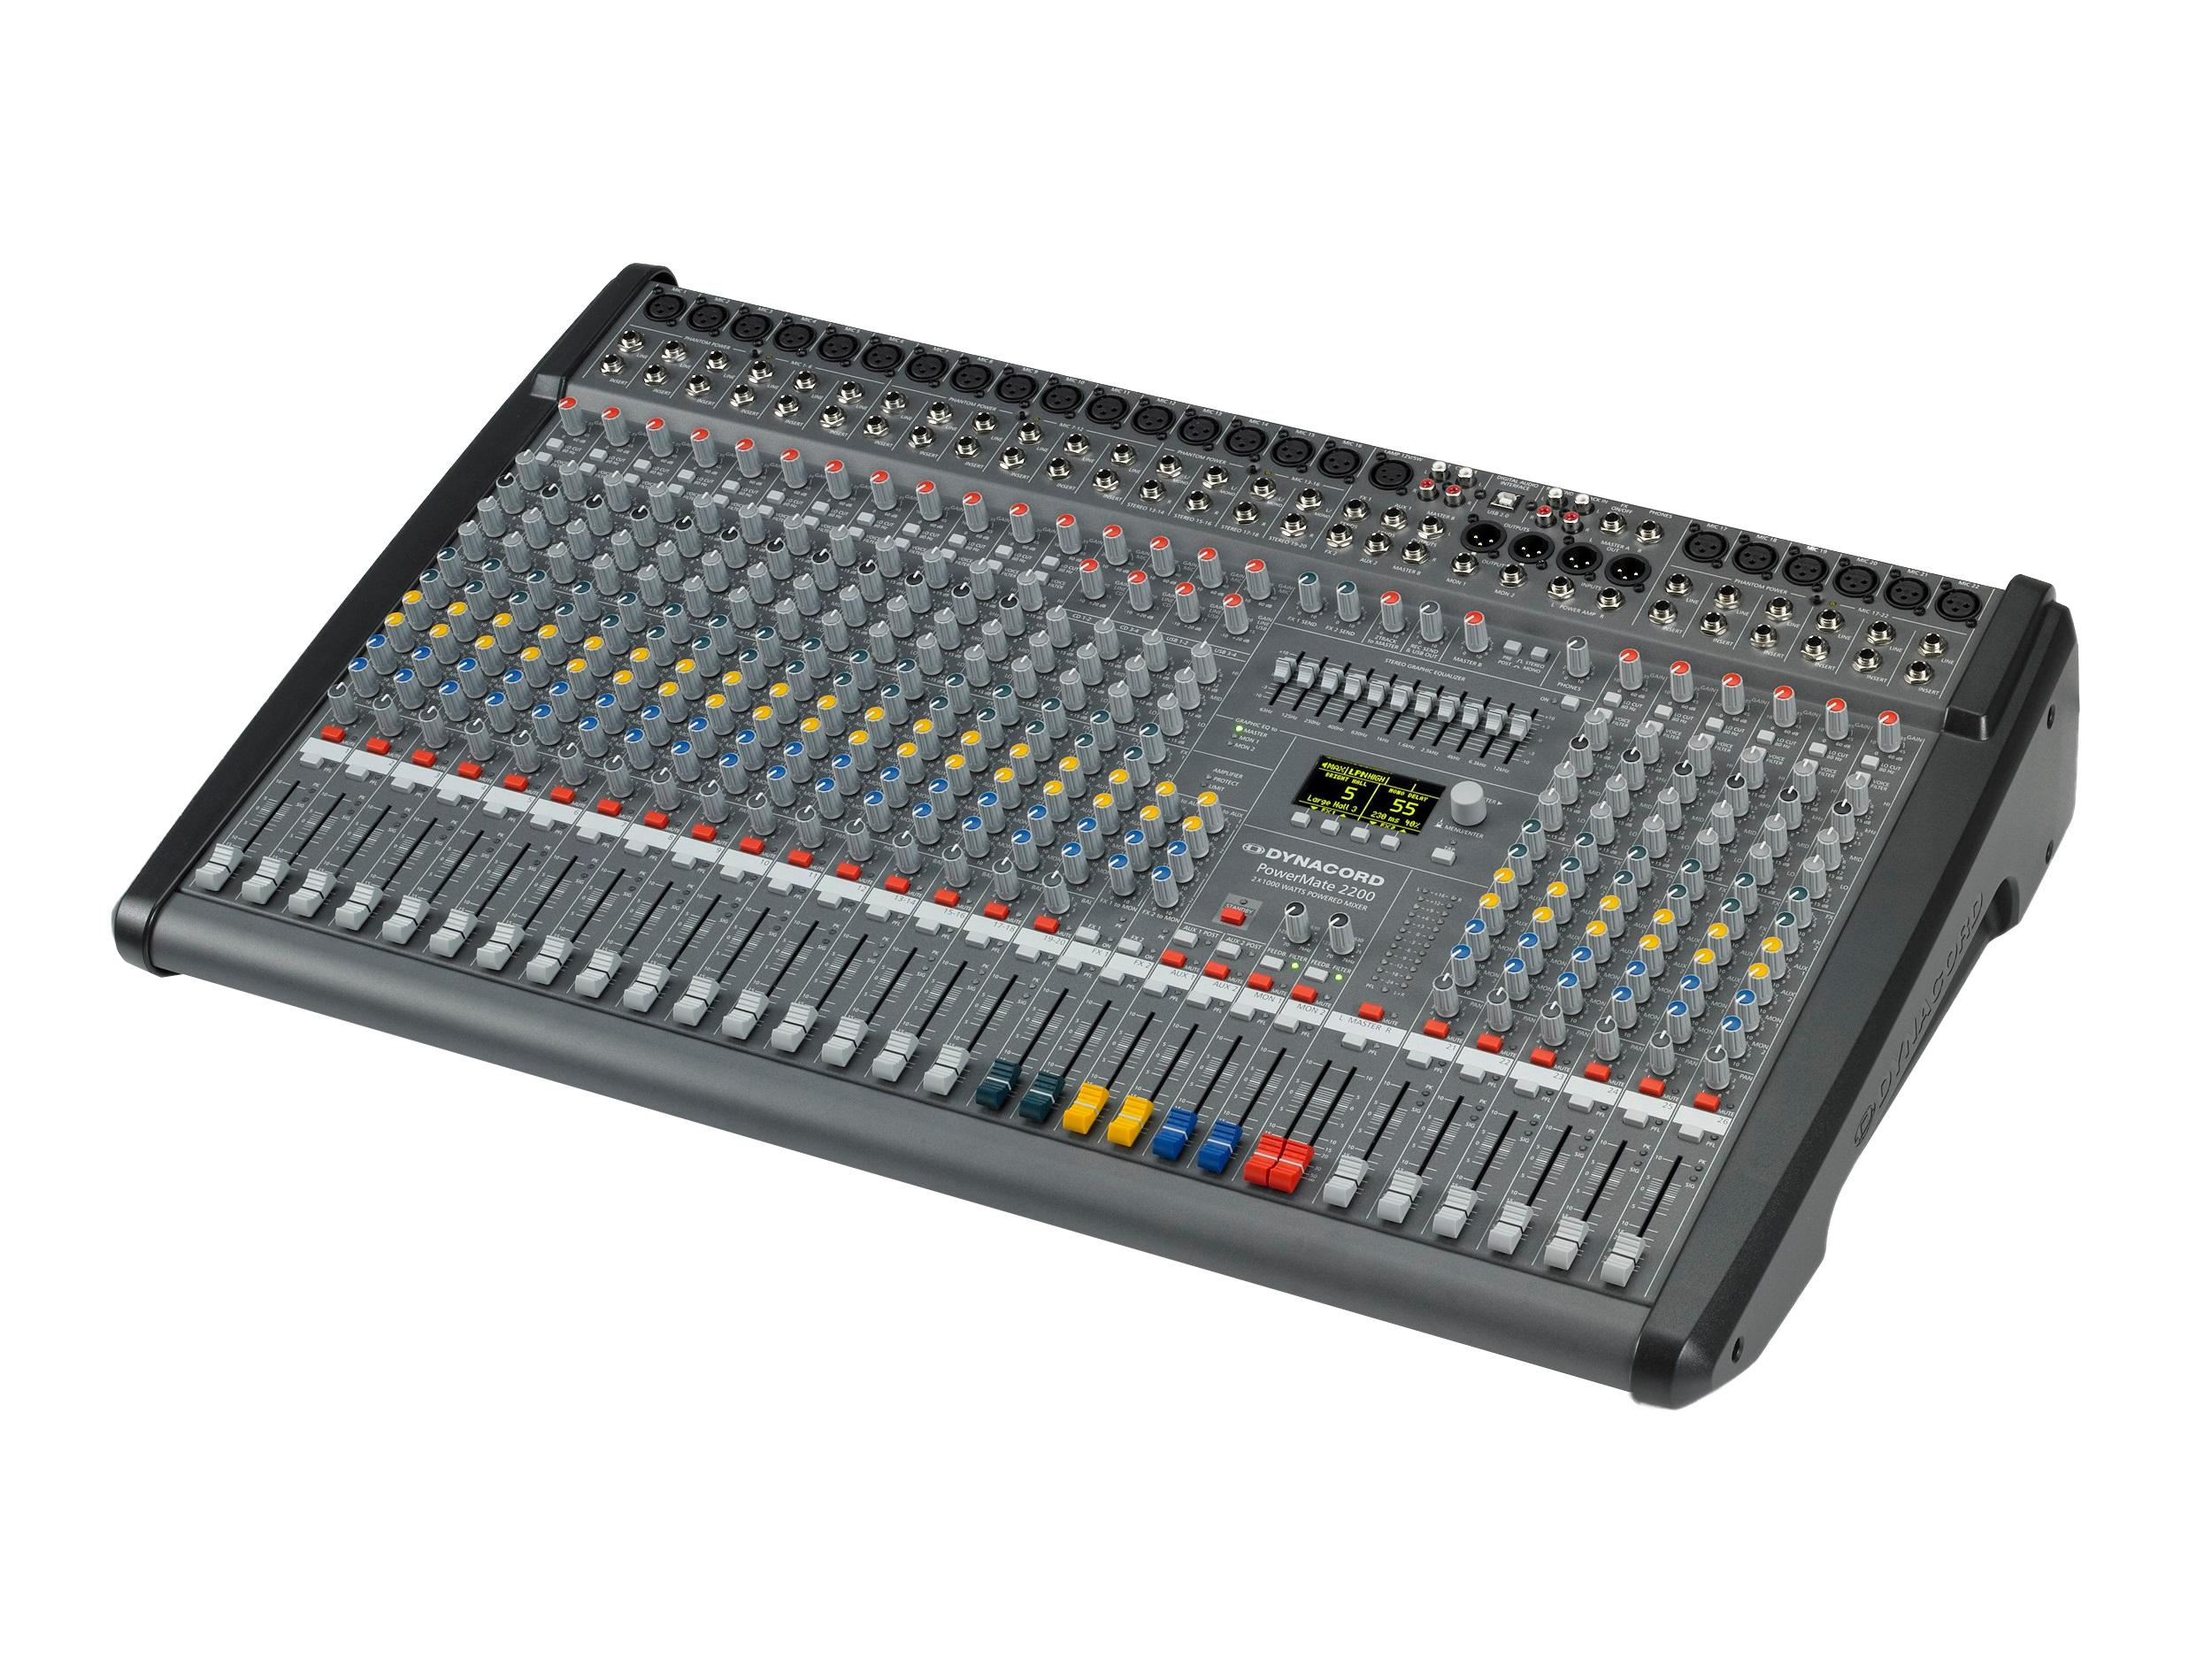 DCPM22003UNIV Power Mixer/18 Mic/Line w 4 Mic/Stereo Line Channels/6xAUX/Dual 24 bit Stereo Effects/USB Audio Interface/Power Amp 2x1000W by Dynacord